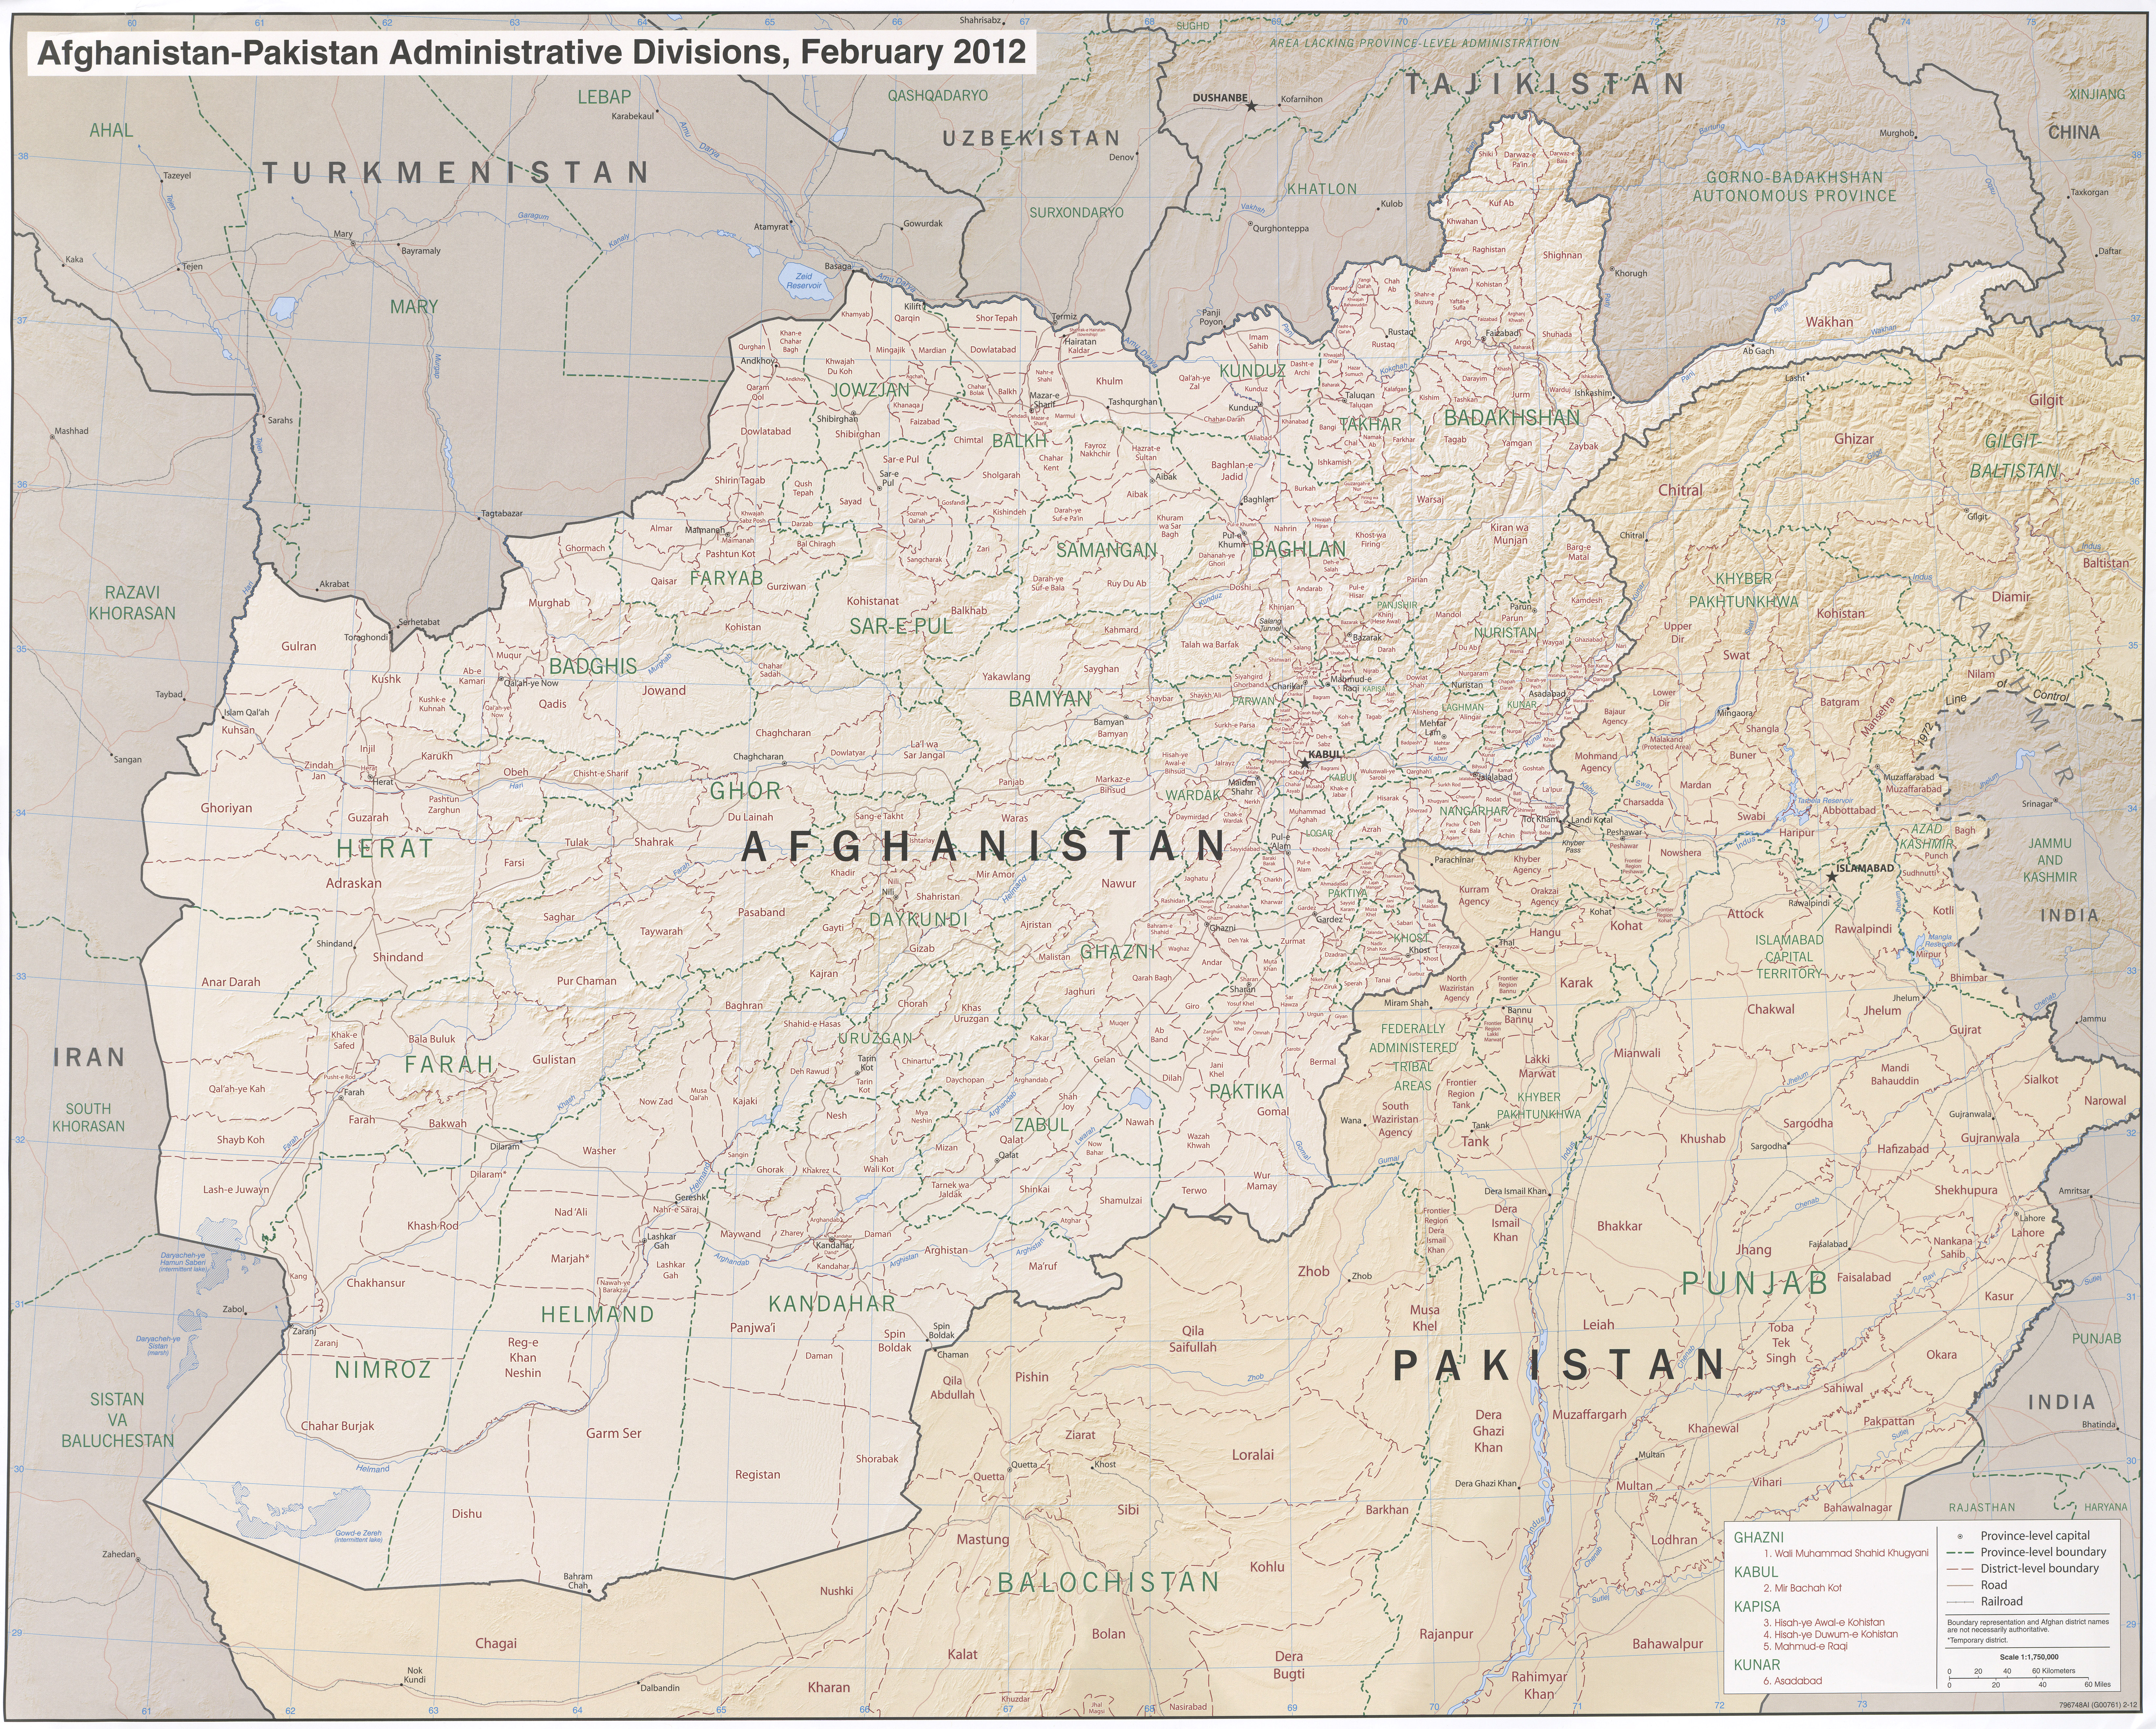 Afghanistan Maps - Perry-Castañeda Map Collection - UT ... on afghanistan climate map, afghanistan area map, afghanistan time zone map, pakistan topographic map, afghanistan rivers map, afghanistan regional command map, afghanistan agriculture map, afghanistan elevation map, afghanistan airports map, afghanistan political map, afghanistan deserts map, afghanistan terrain map, afghanistan provinces map, afghanistan kabul city map, afghanistan continent map, bagram afghanistan map, afghanistan vegetation map, afghanistan flag map, afghanistan languages map, afghanistan culture map,